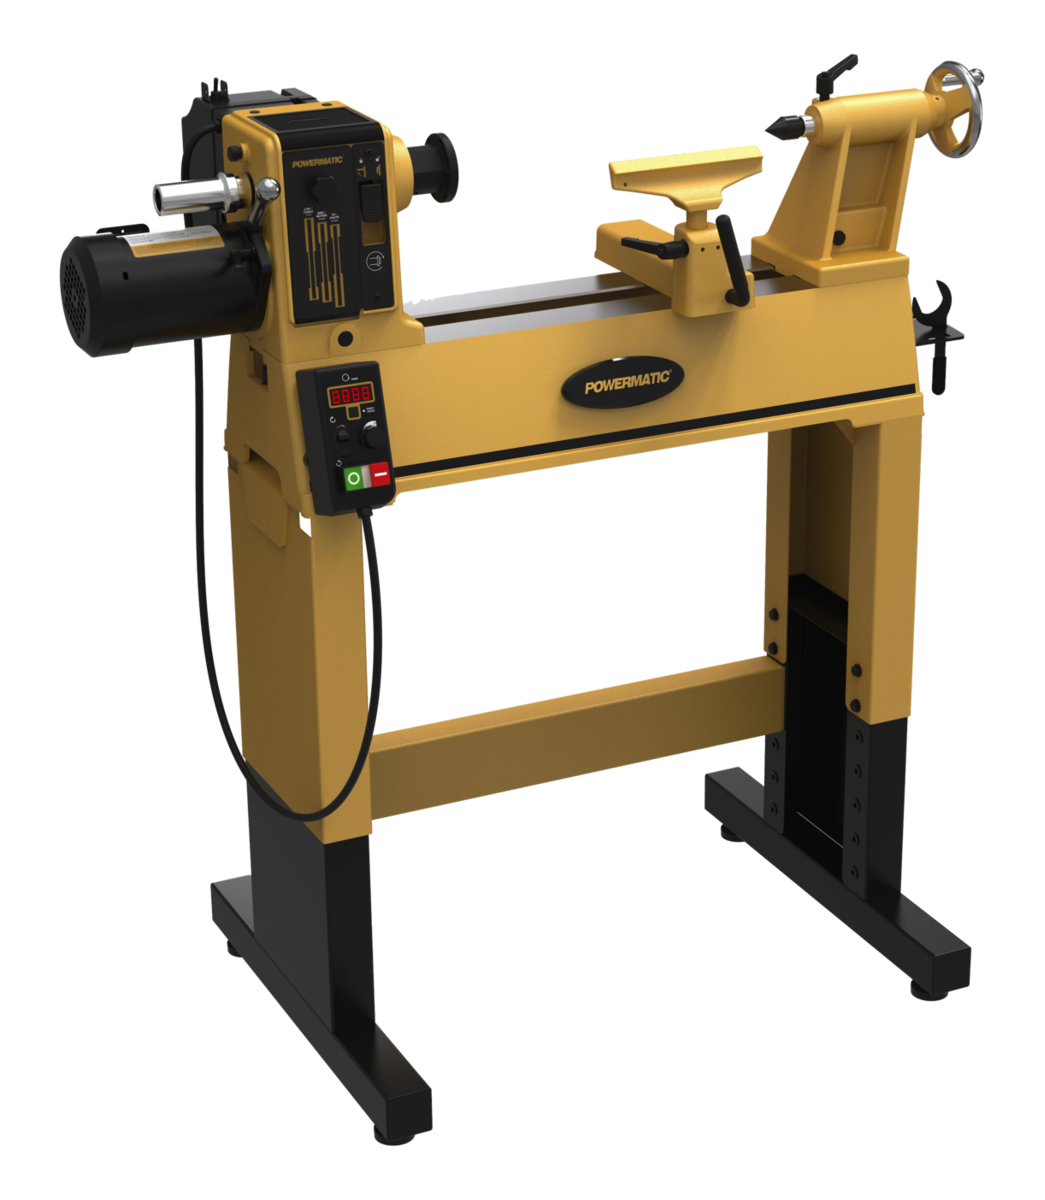 Powermatic 2014 Lathe and Stand